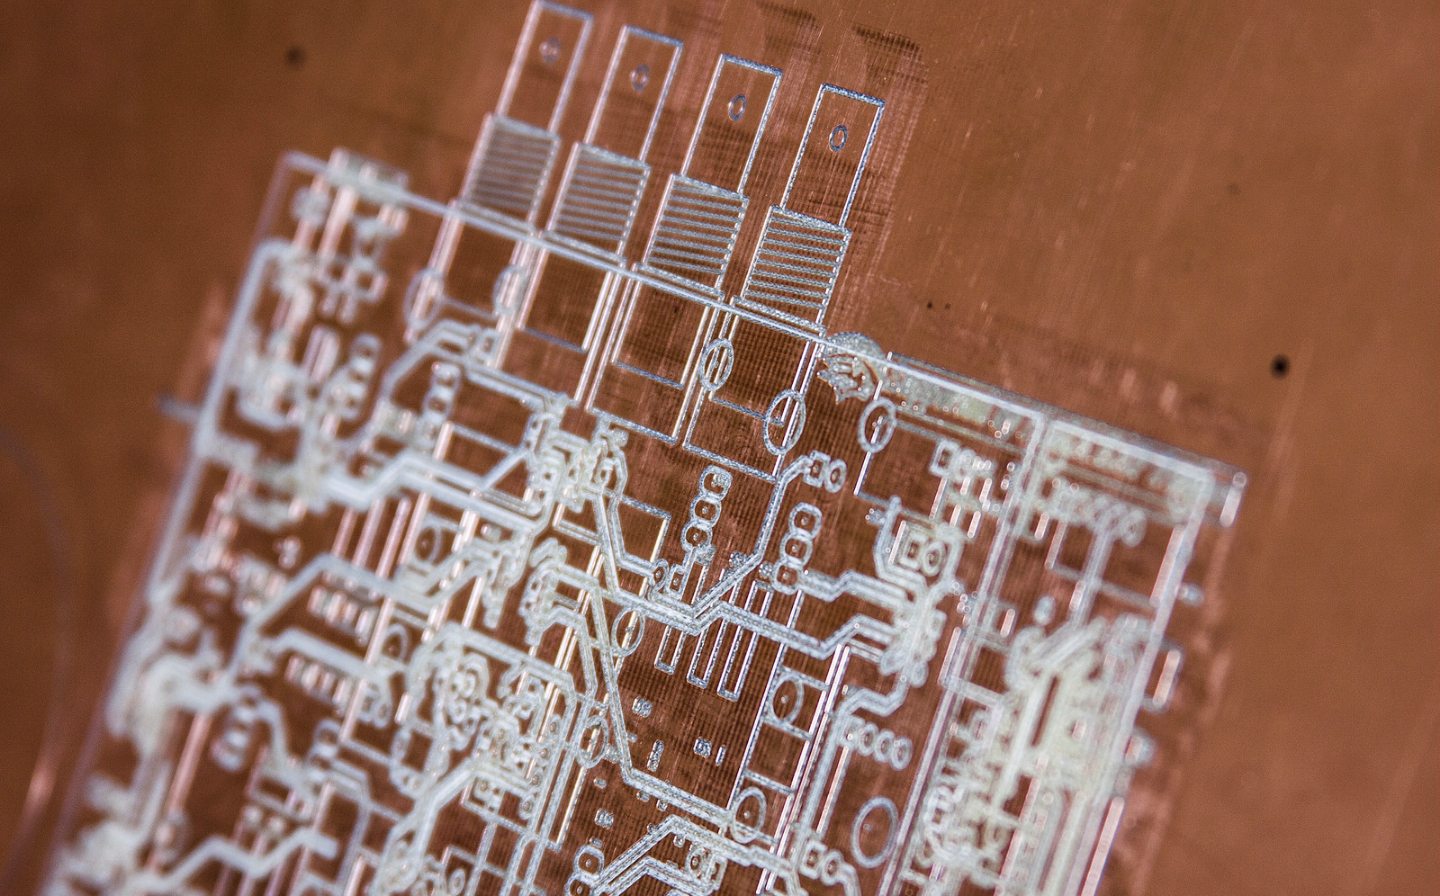 Example of circuit board made at DeLaMare Library.